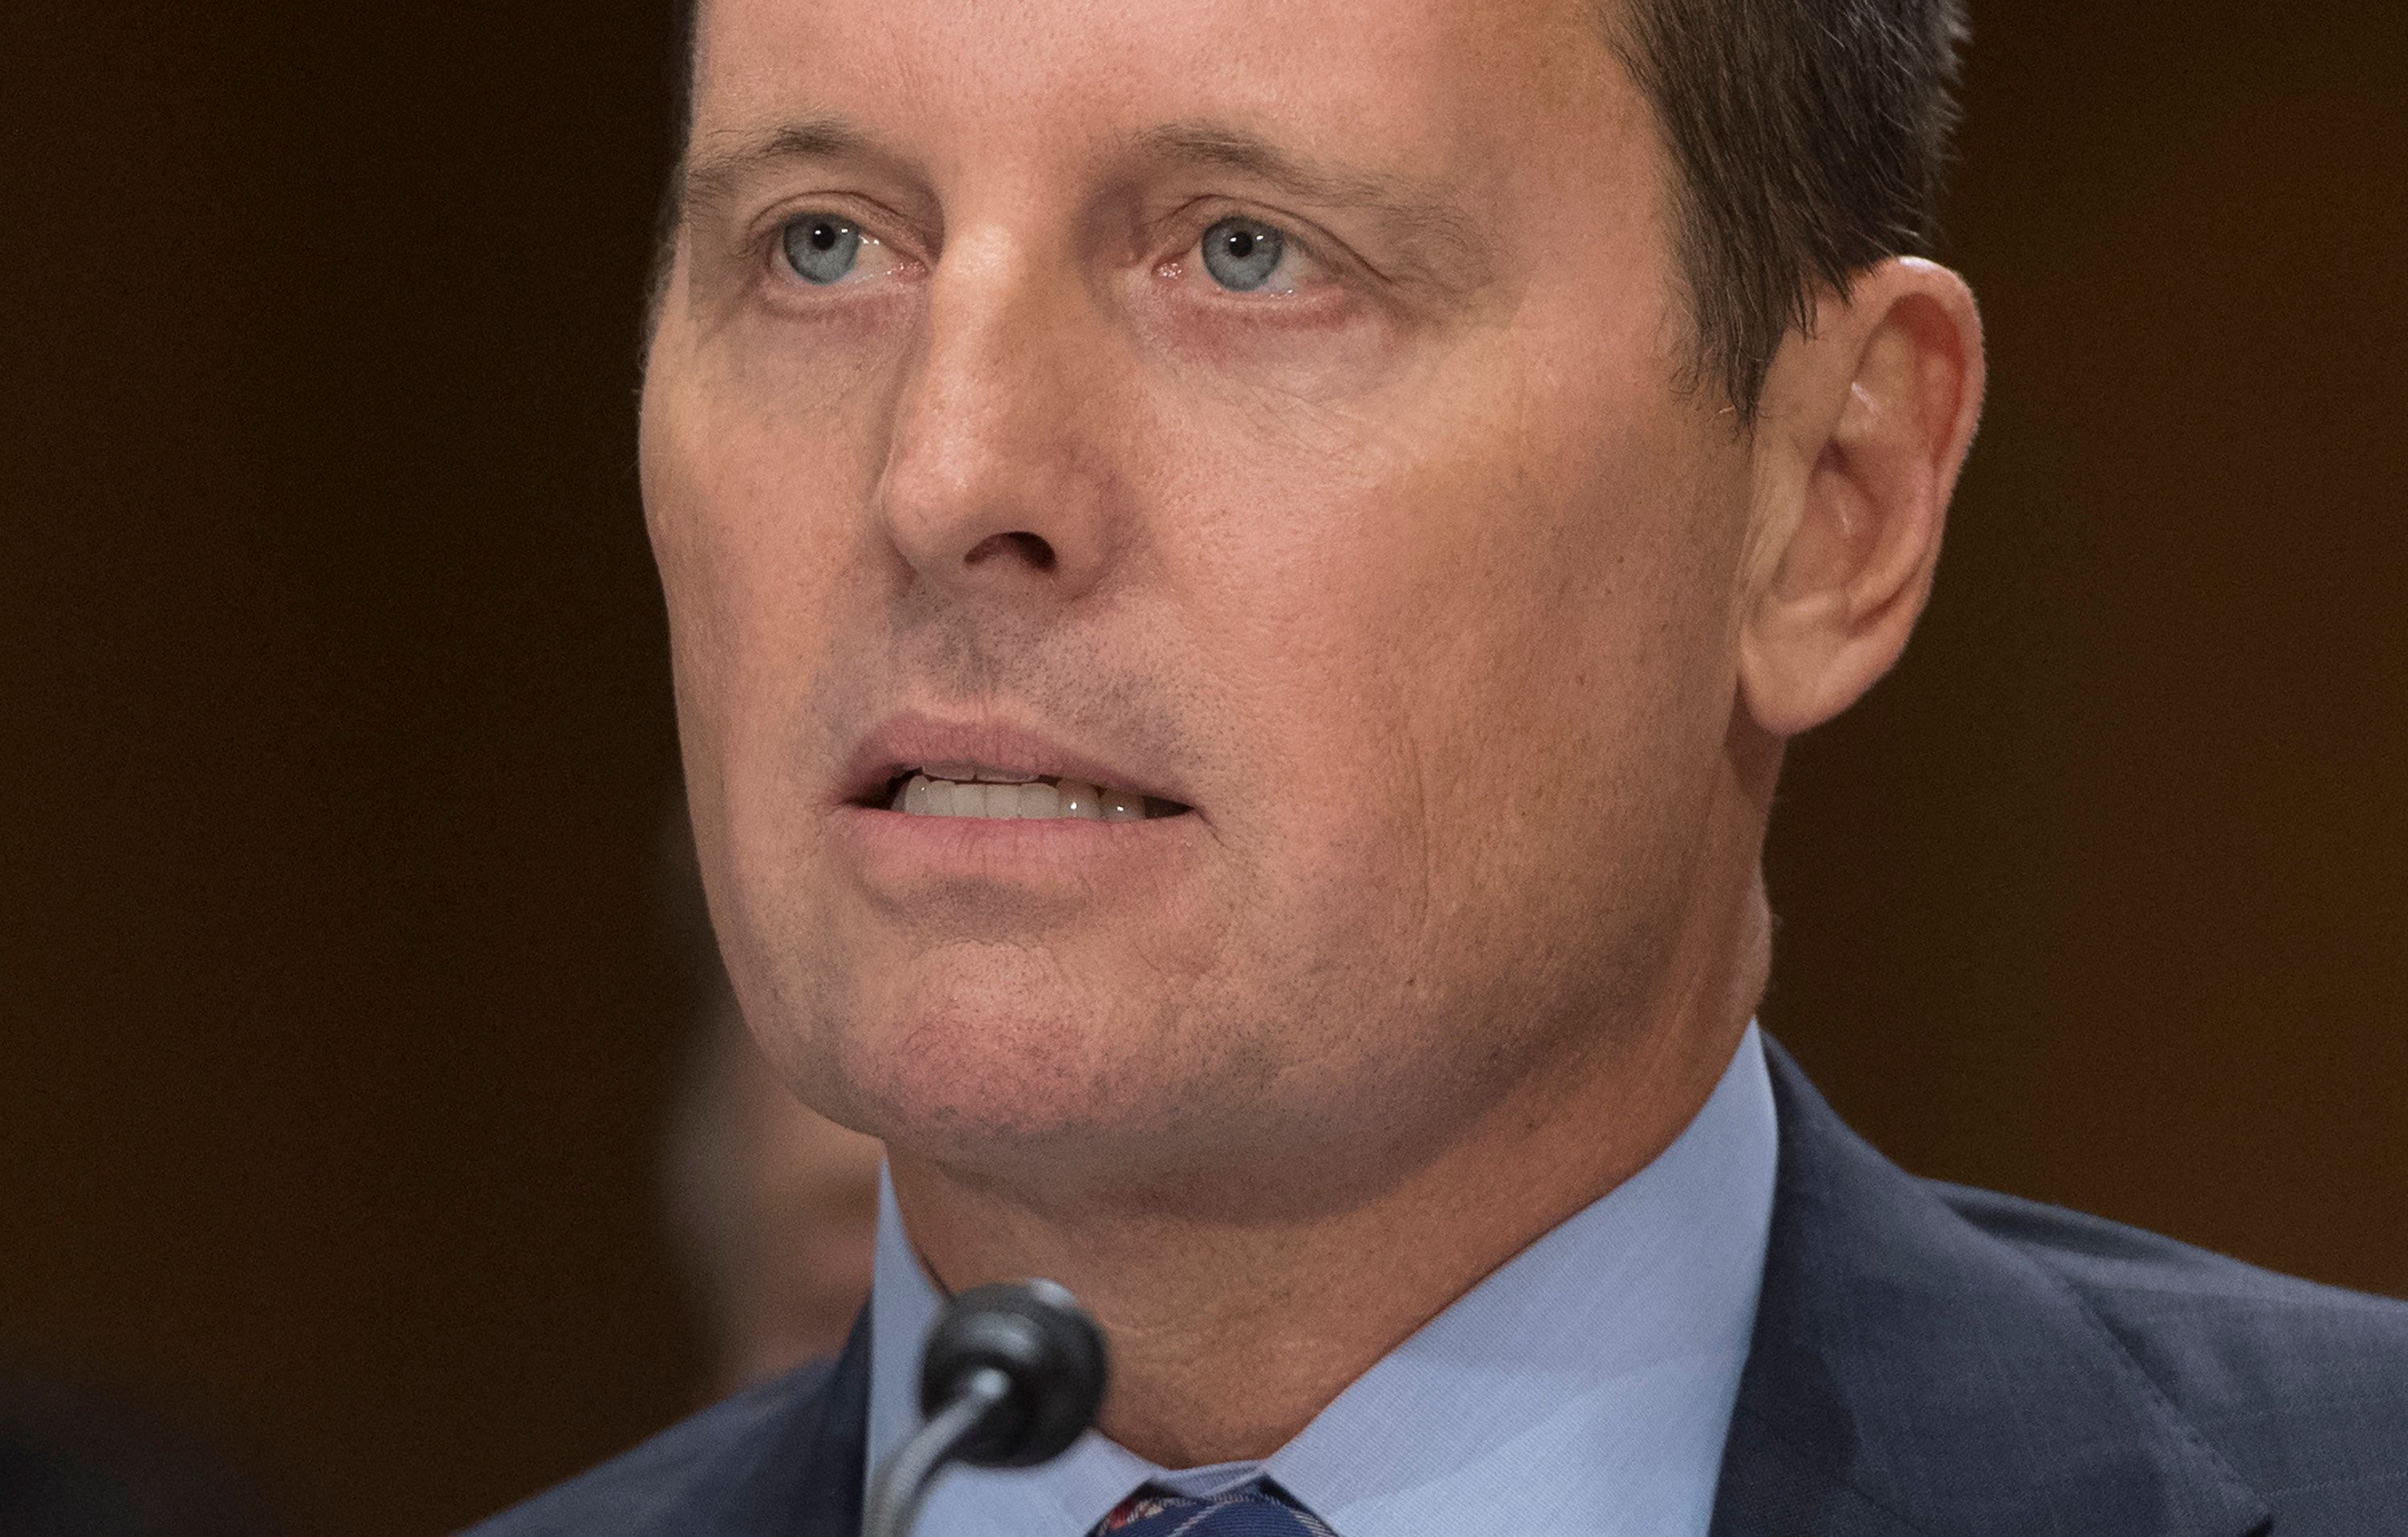 The Senate voted 56-42 to confirm Richard Grenell, largely along party lines, filling a position that had been vacant since J